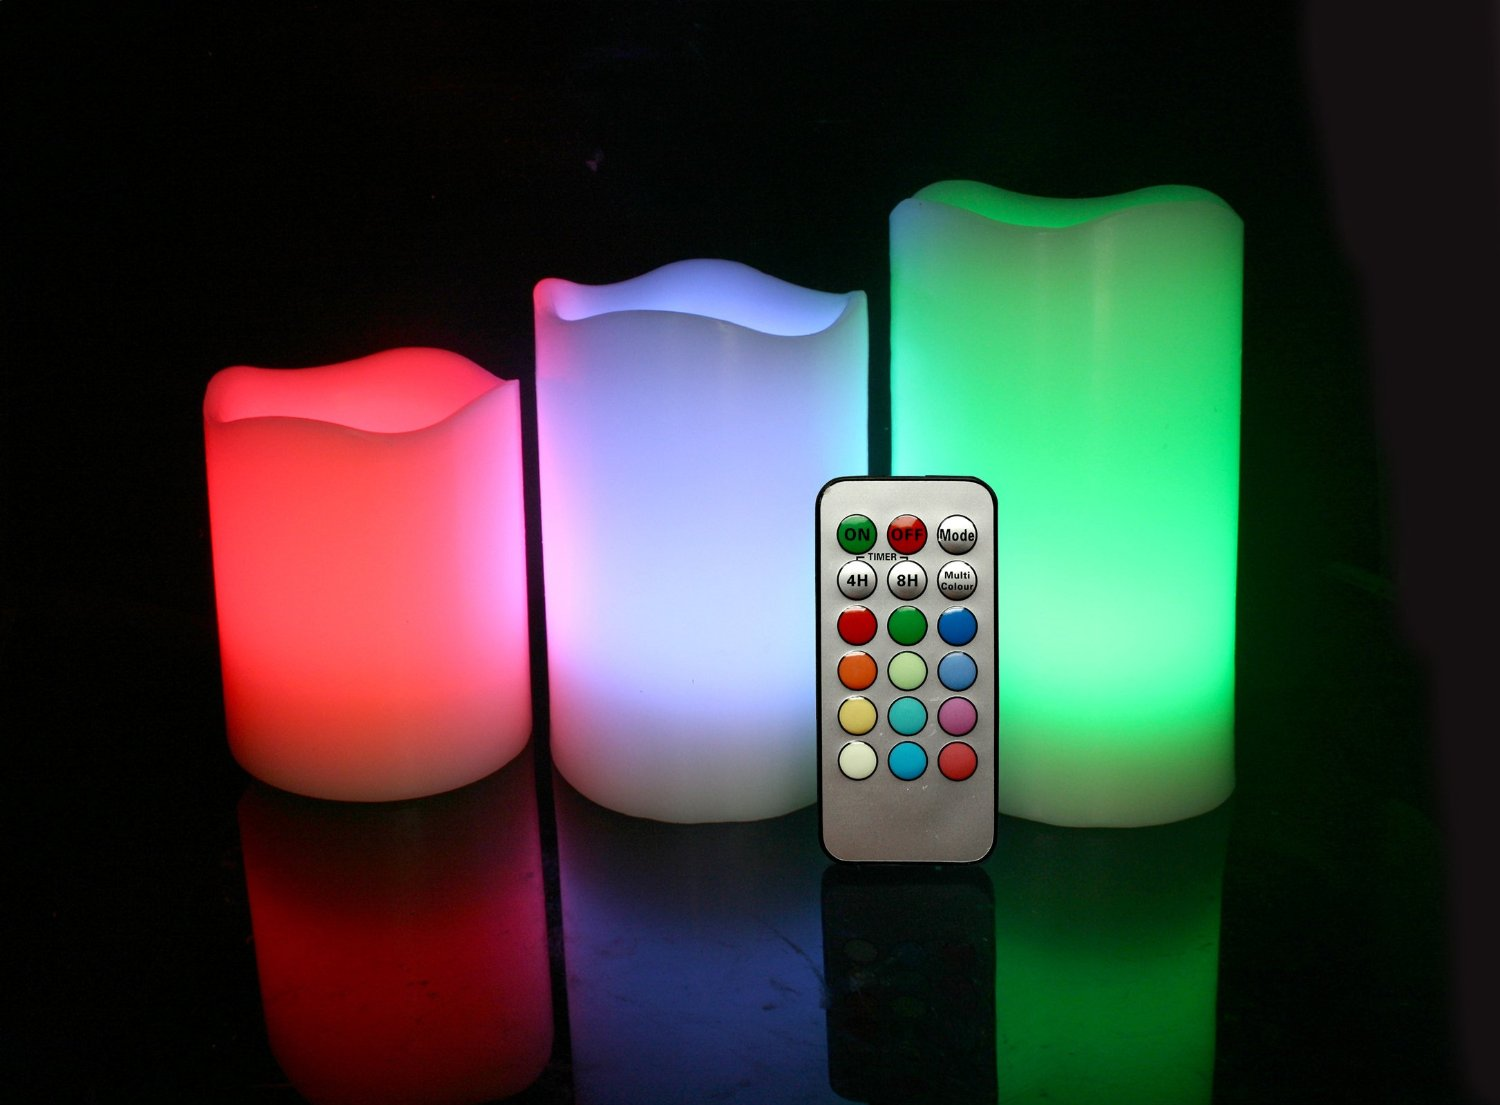 Unique 2012 Christmas Technology Gifts for Him or Her | phillihp\'s ...